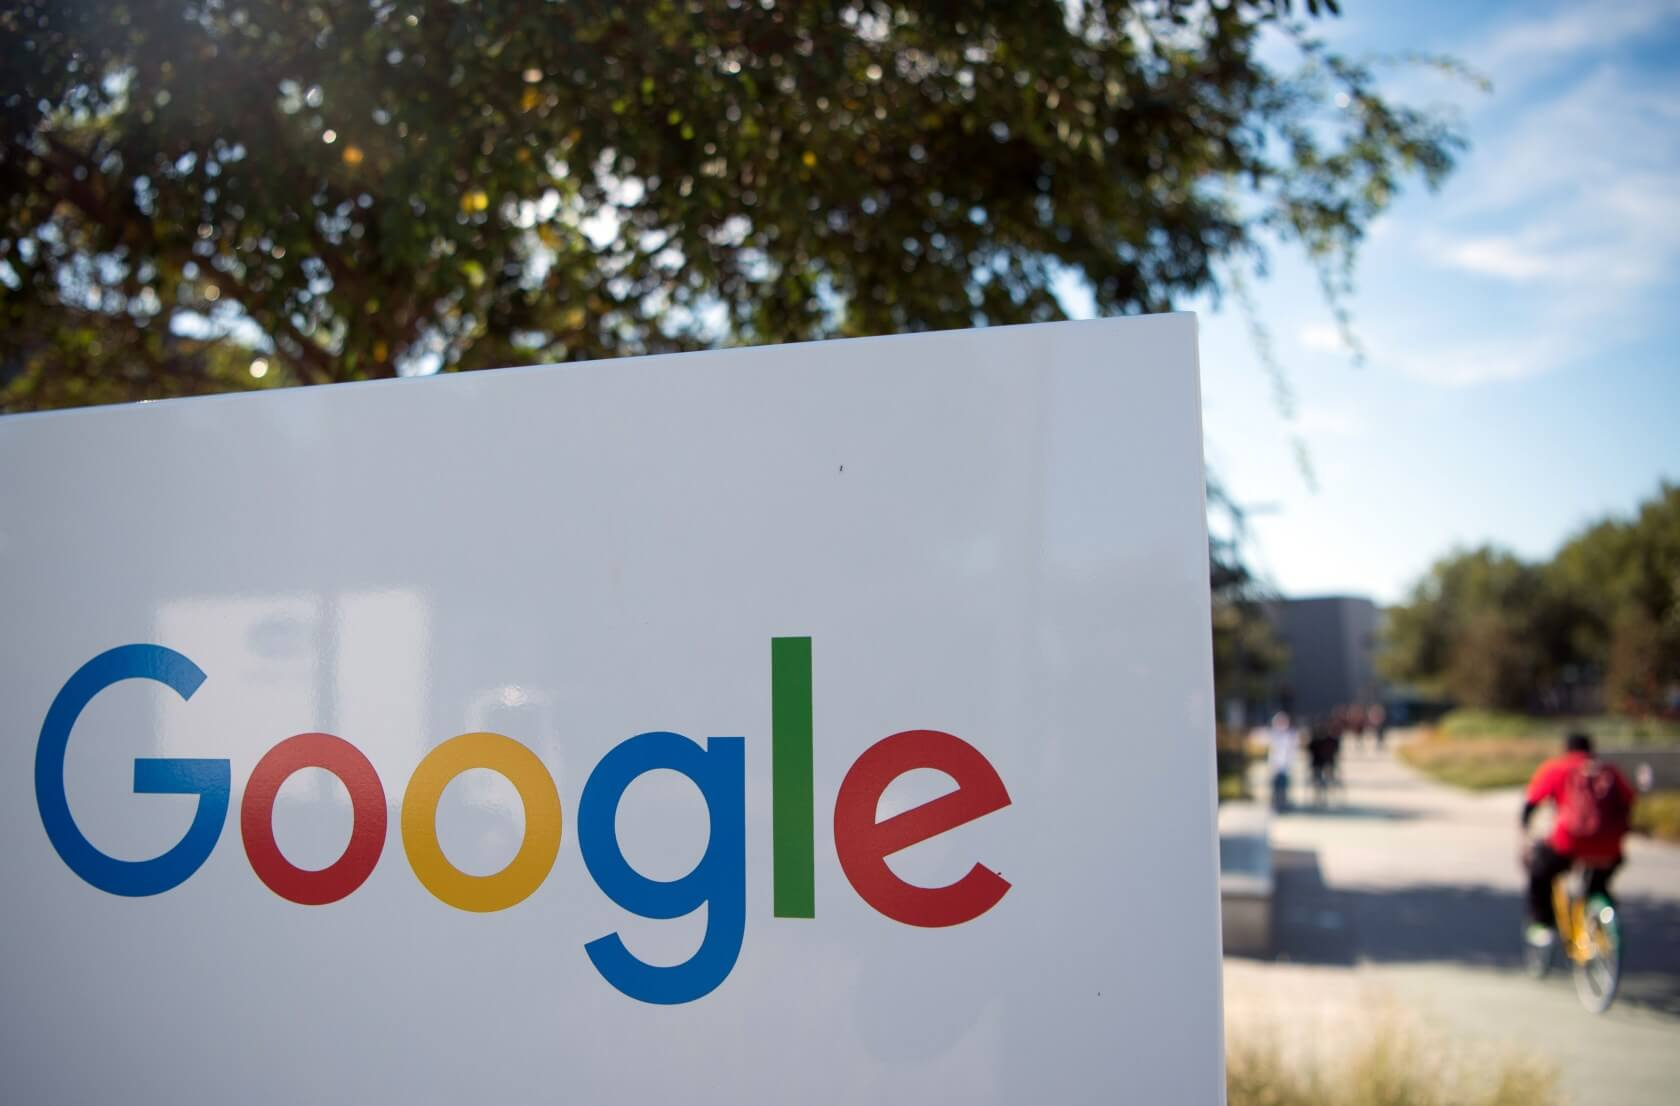 Lawyers seek class action against Google for tracking users